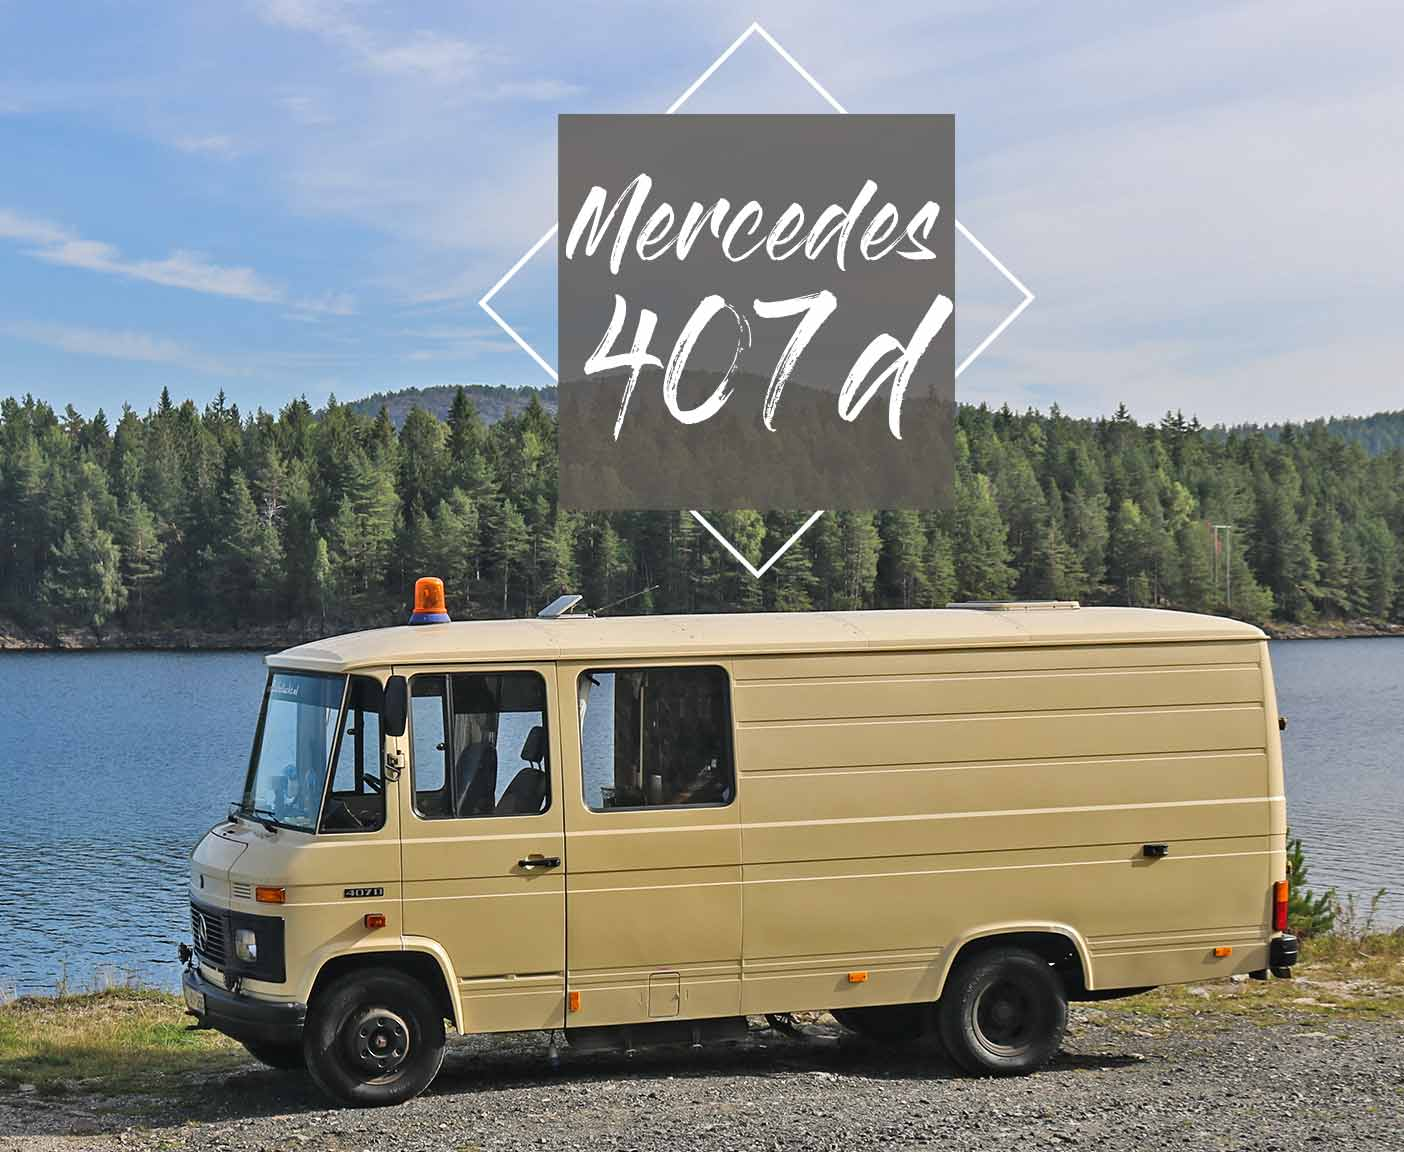 mercedes-407d-vanlife-duedo-van-conversion-interoir-inside